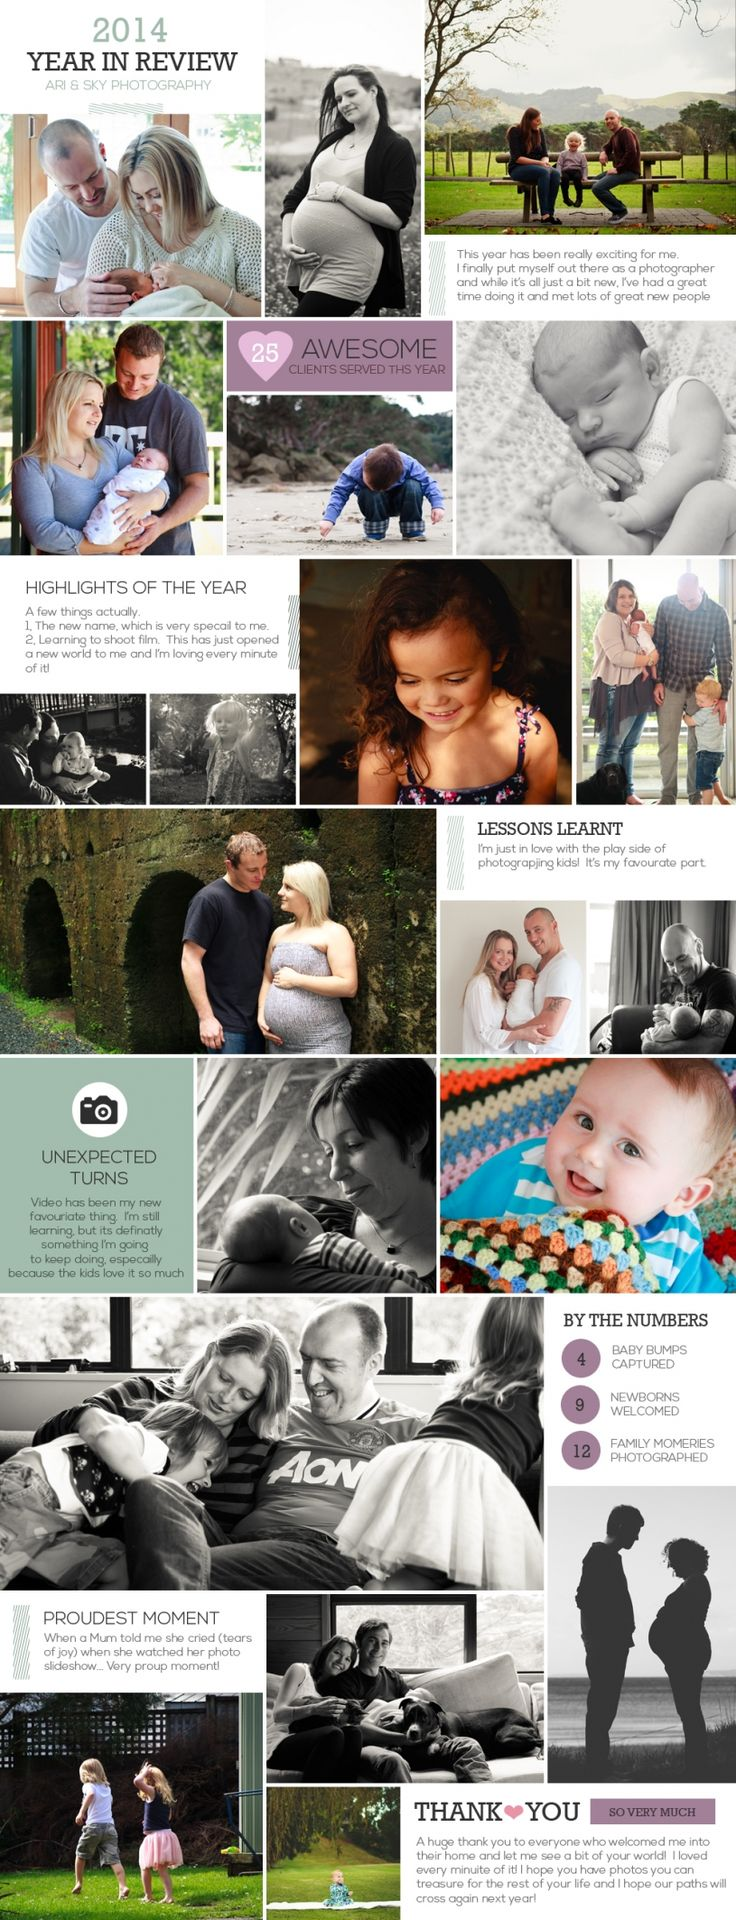 Ari & Sky Photography - Year In Review Blog Post Board